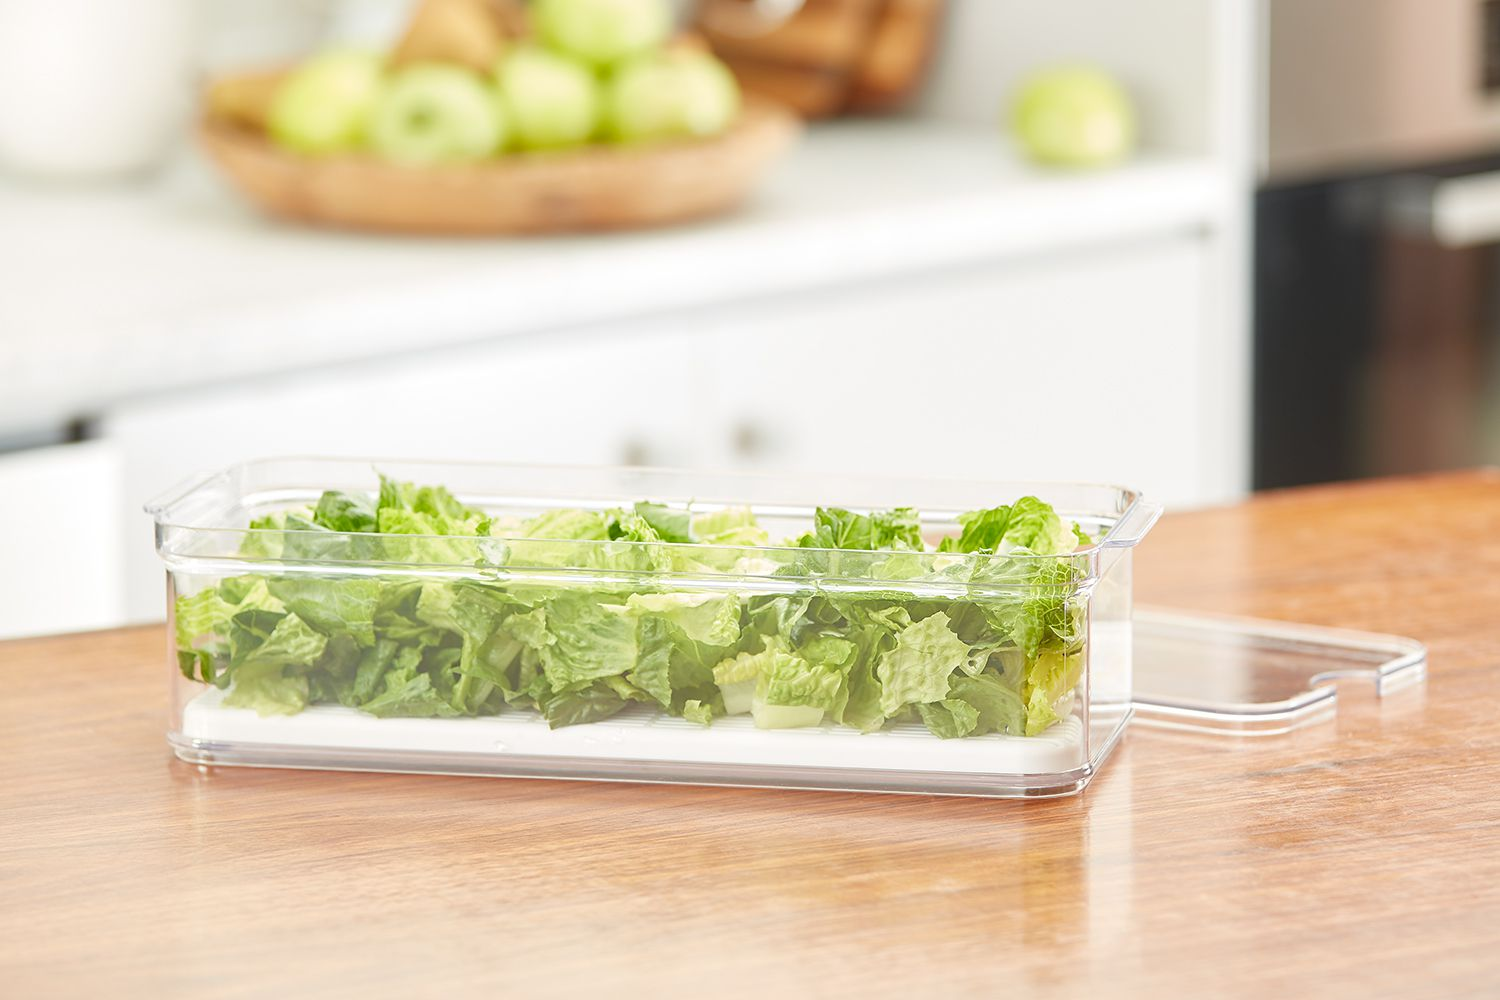 lettuce in an idesign and the spruce home organization line container, available at lowe's